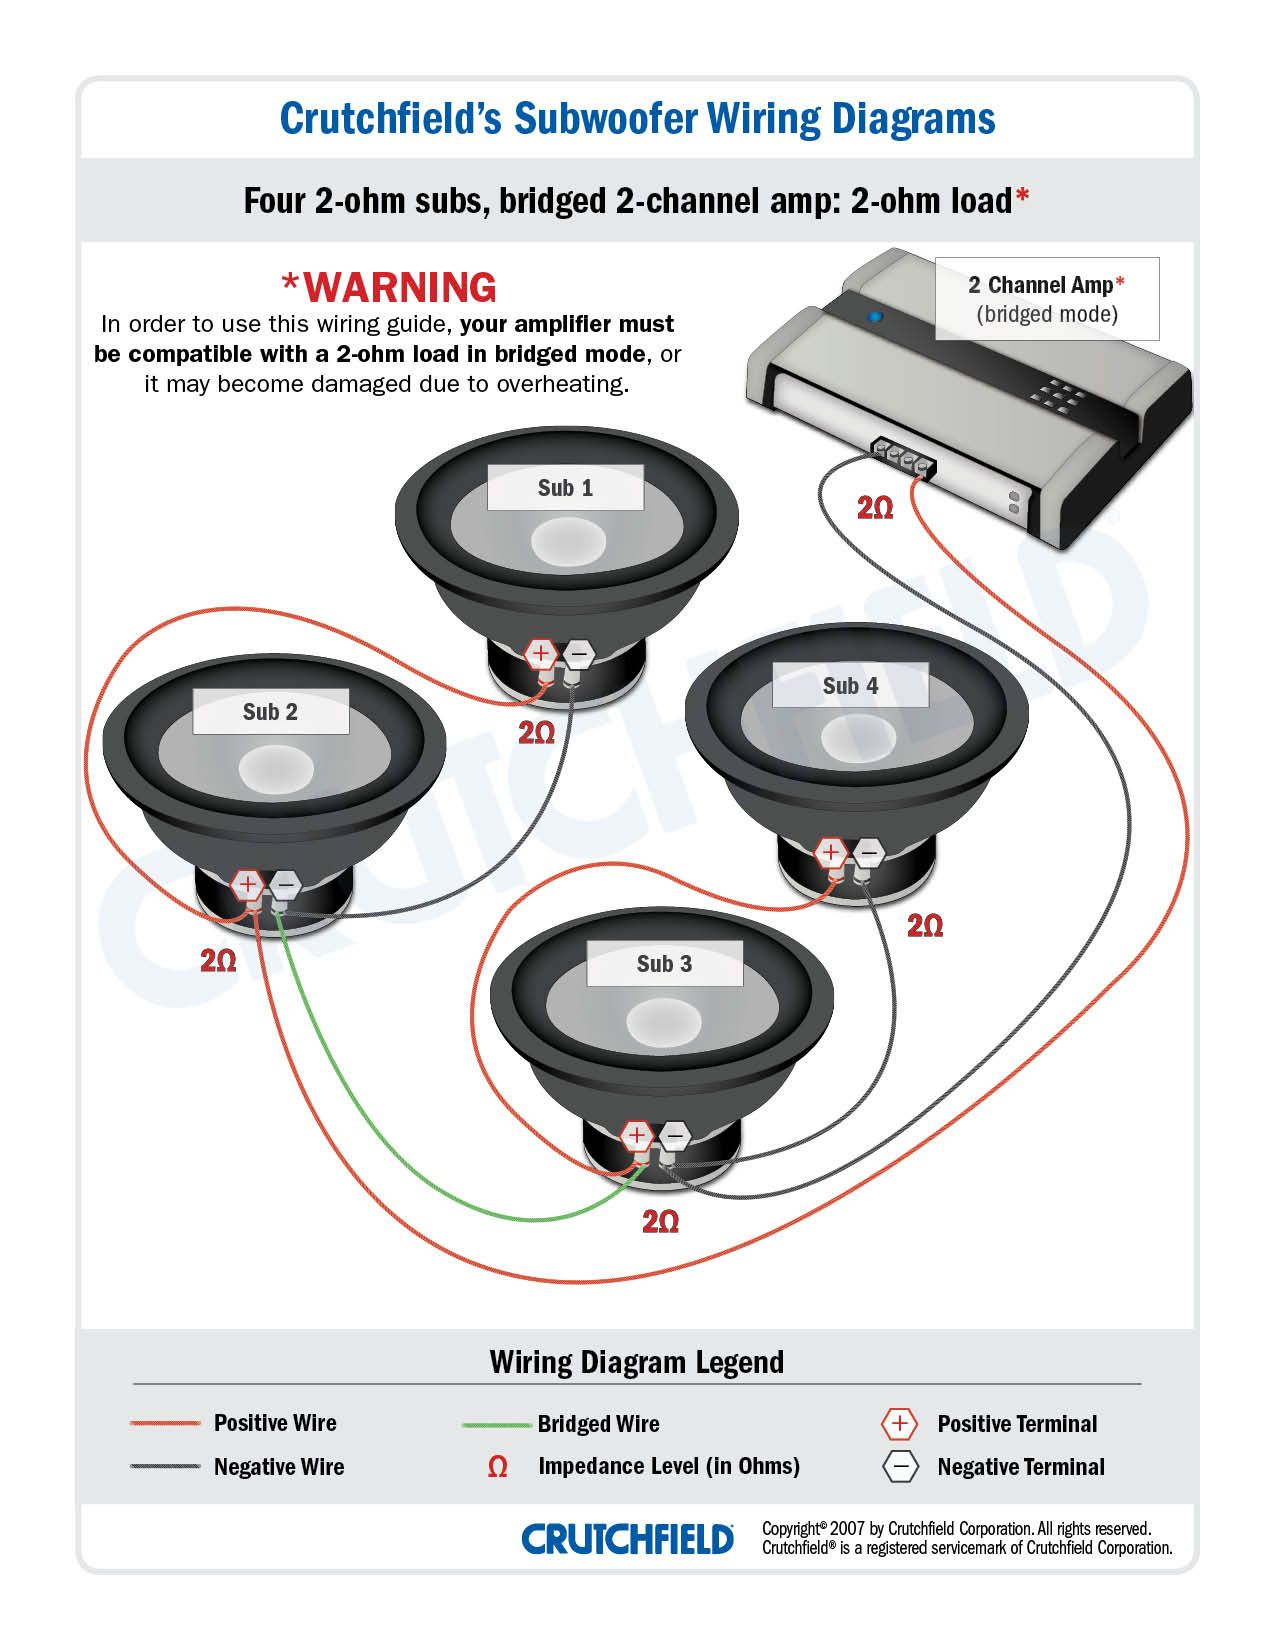 Top 10 Subwoofer Wiring Diagram Free Download 4 SVC 2 Ohm